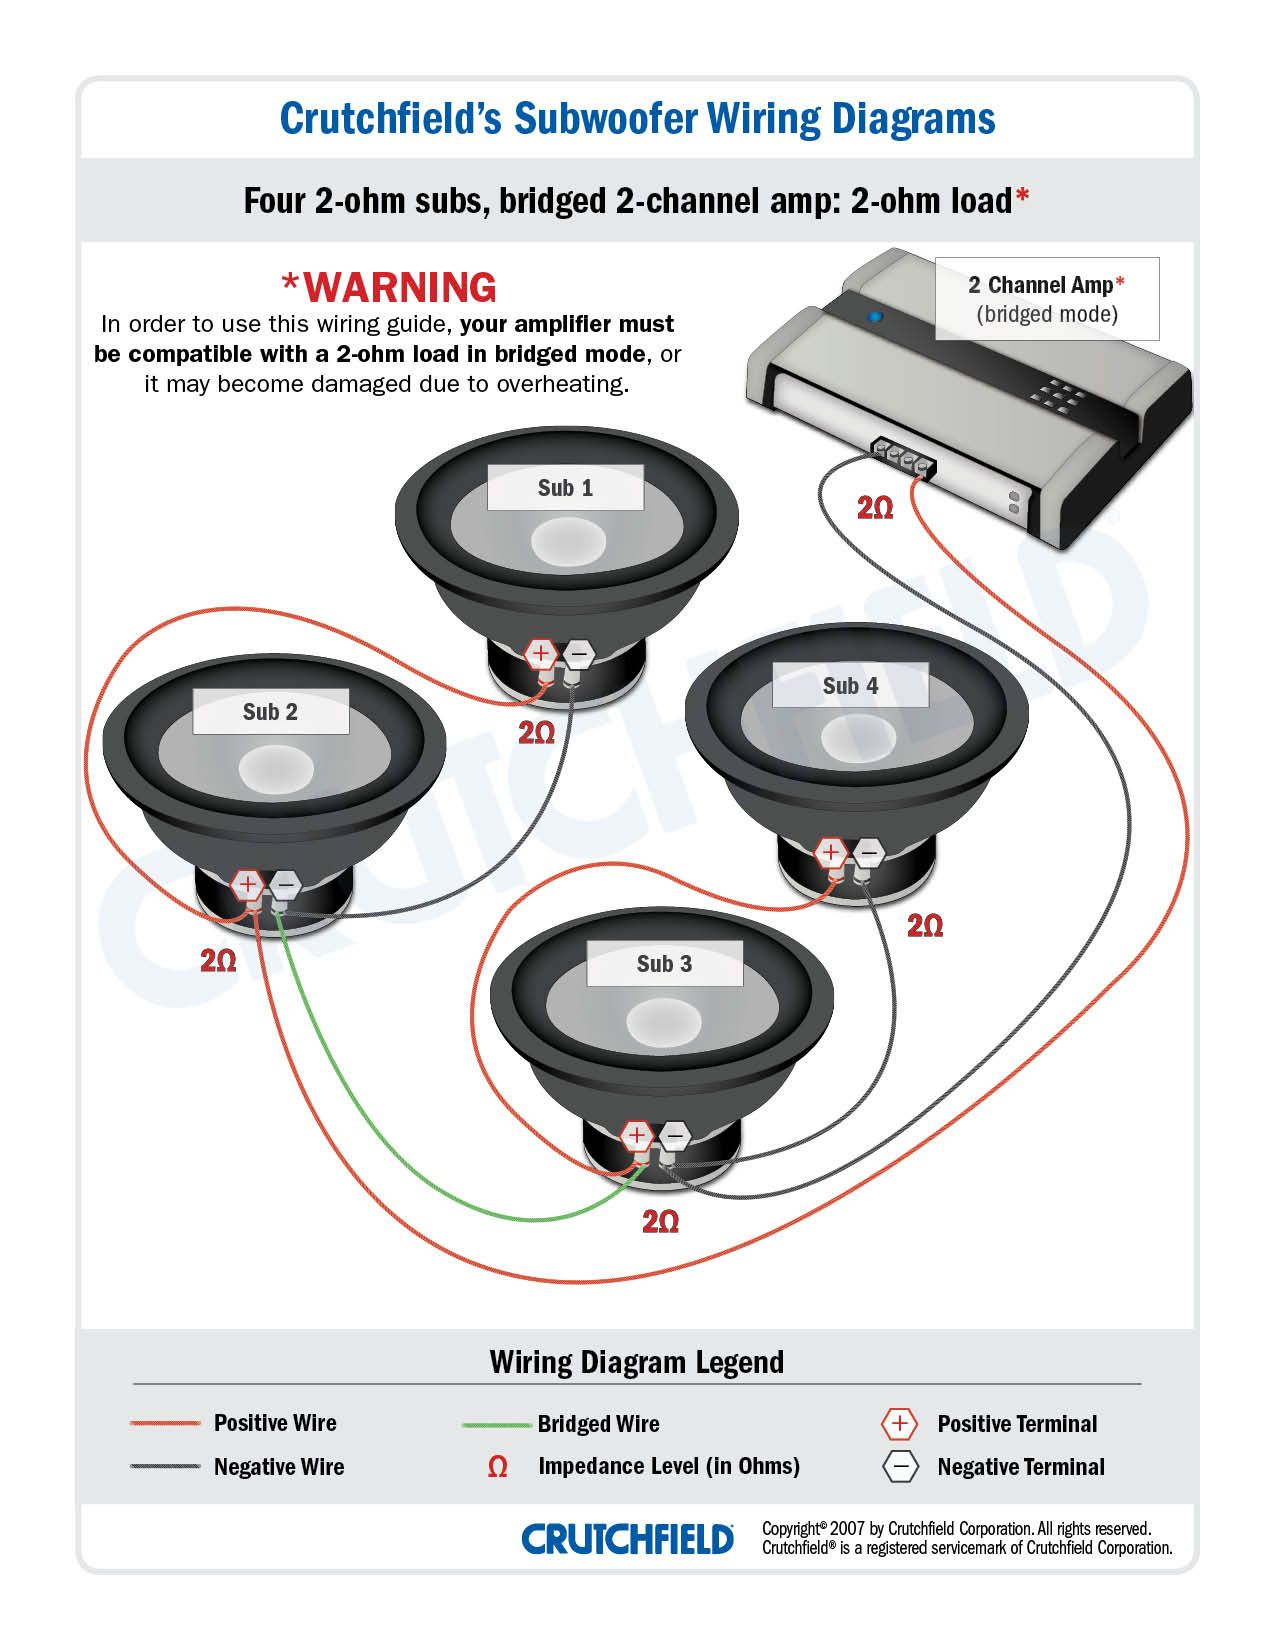 Top 10 Subwoofer Wiring Diagram Free Download 4 SVC 2 Ohm